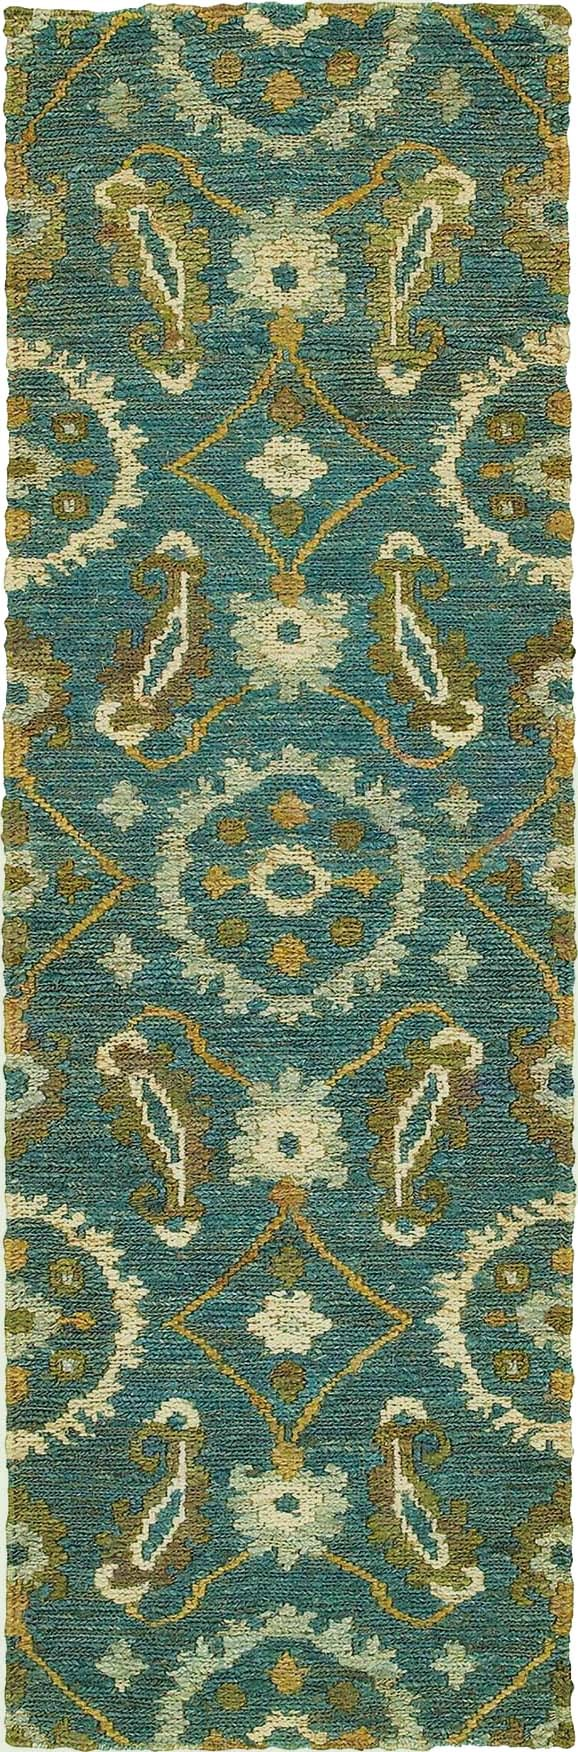 Oriental Weavers Tommy Bahama Valencia 57702 Rugs Rugs